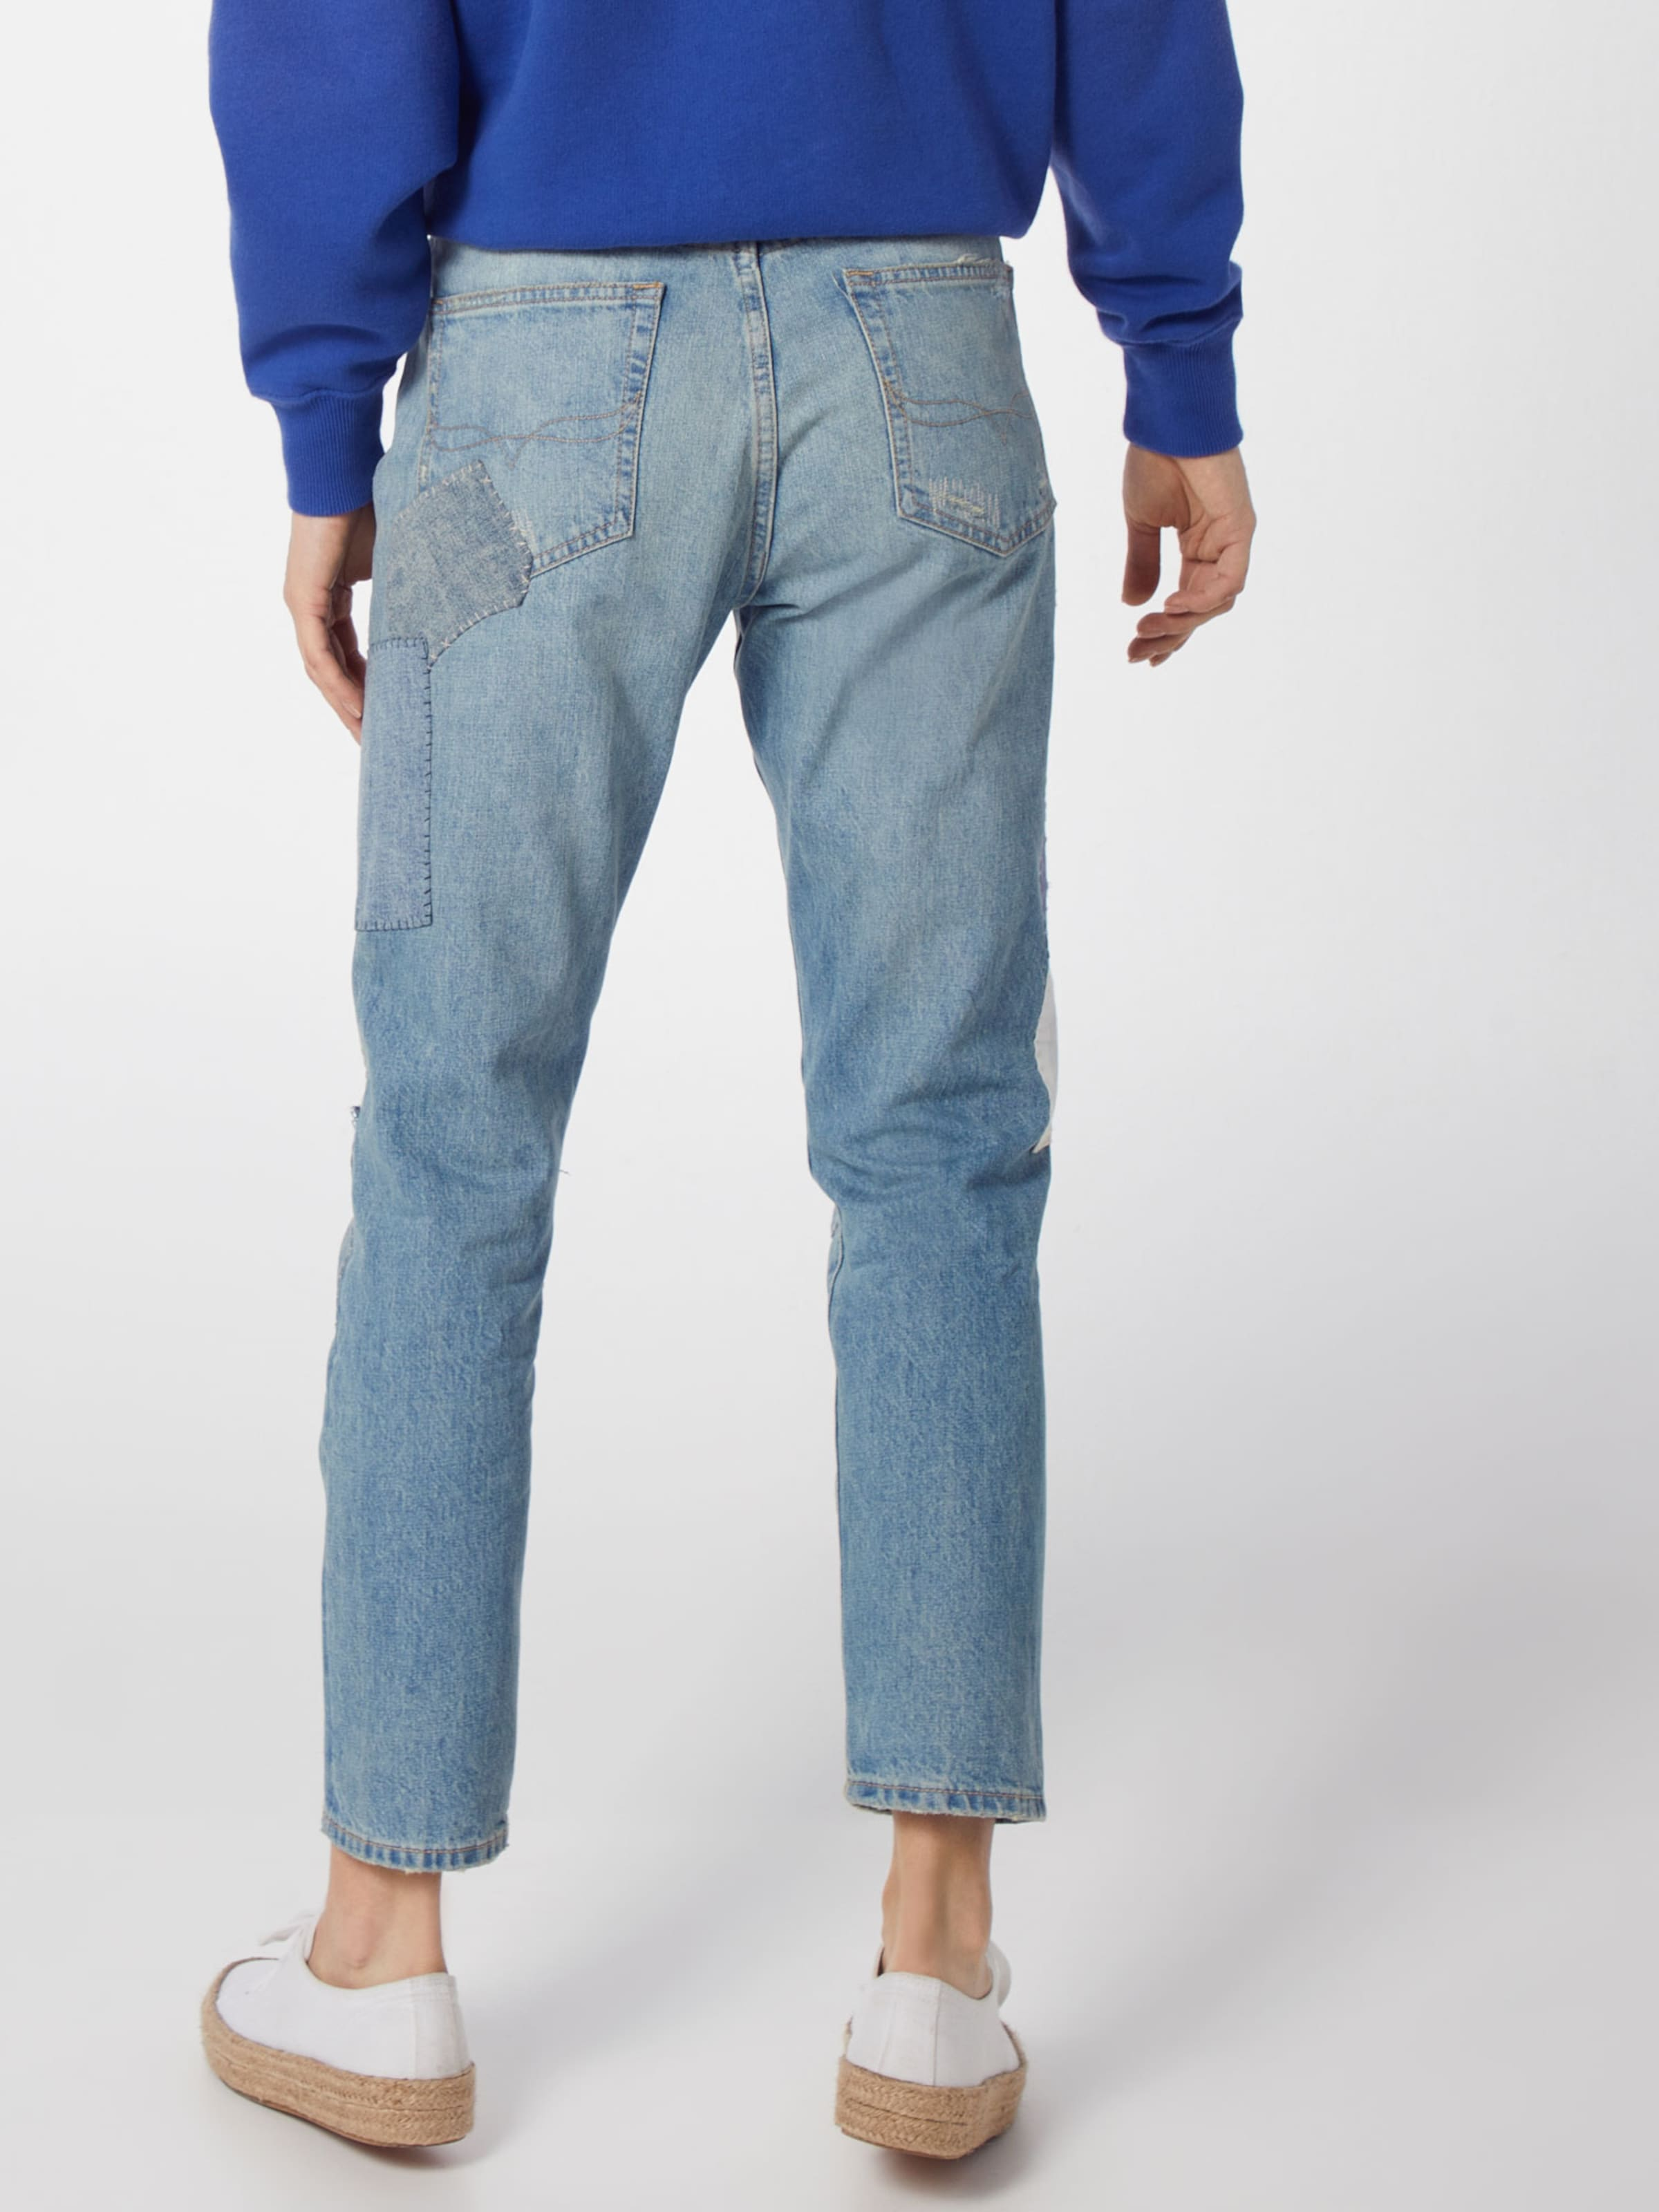 Lauren In Ralph Blue Denim Polo Jeans 'avery' OyNv8mn0w